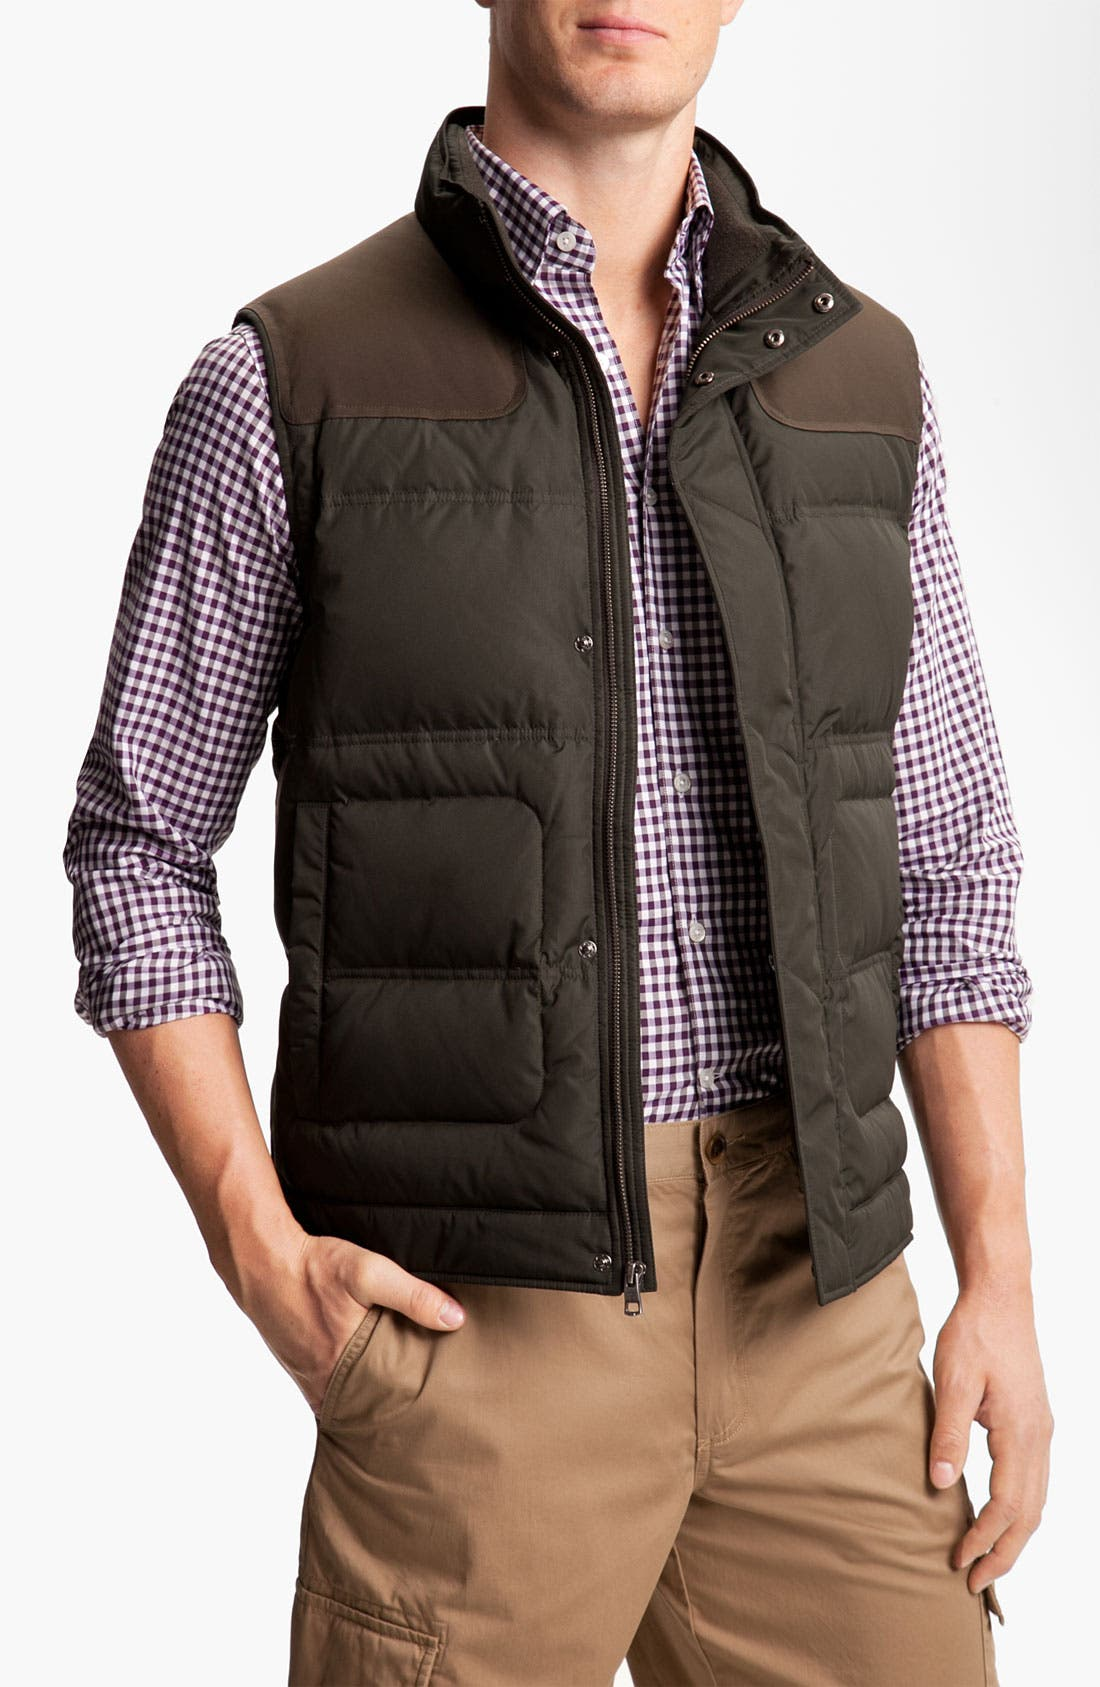 Alternate Image 1 Selected - Cole Haan Quilted Down Vest (Online Exclusive)